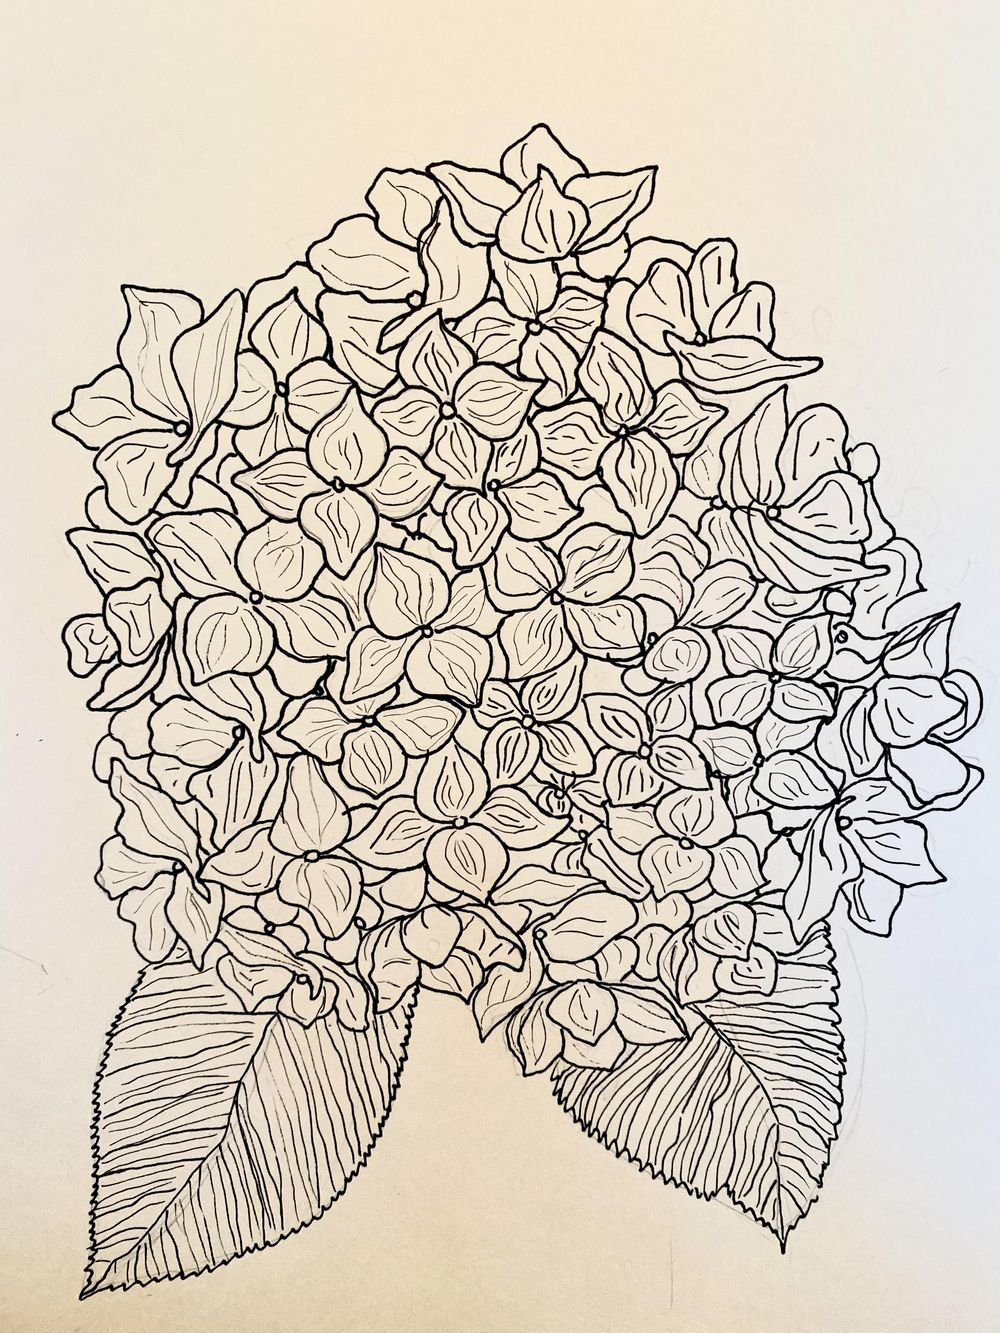 Poppies and hydrangeas - image 1 - student project